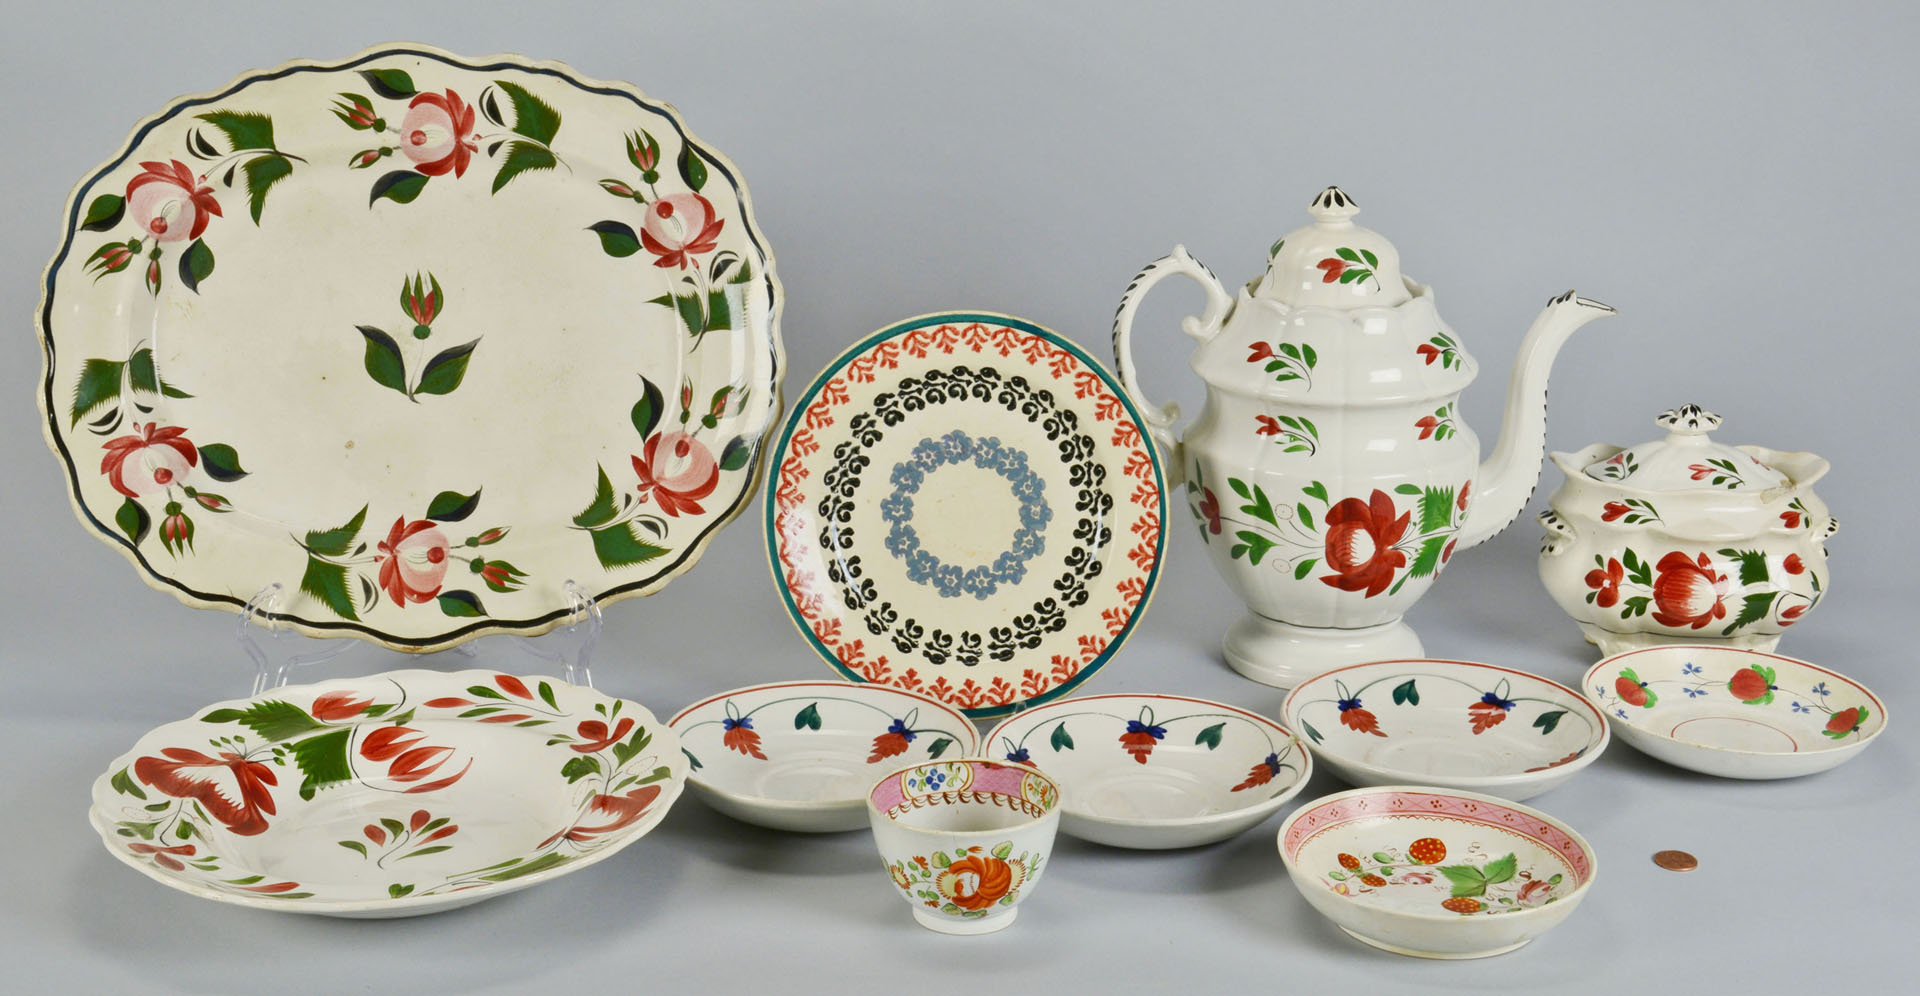 Lot 638: 11 pcs of Adams Rose Ironstone Pottery, Other